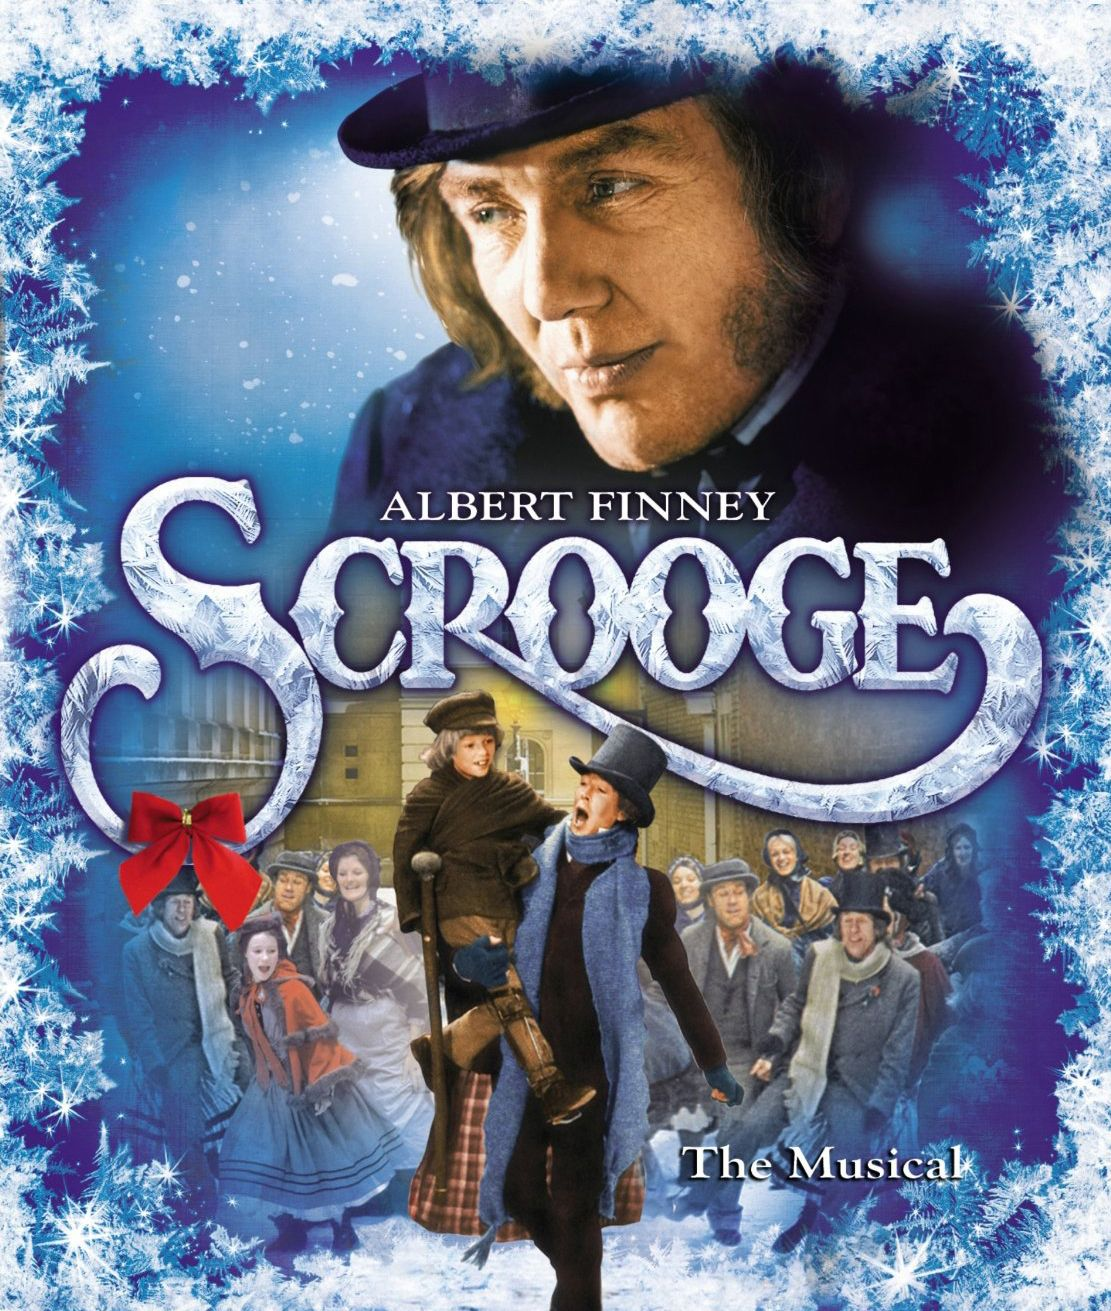 Scrooge 1970 Scrooge Is A 1970 Musical Film Adaptation Of Charles